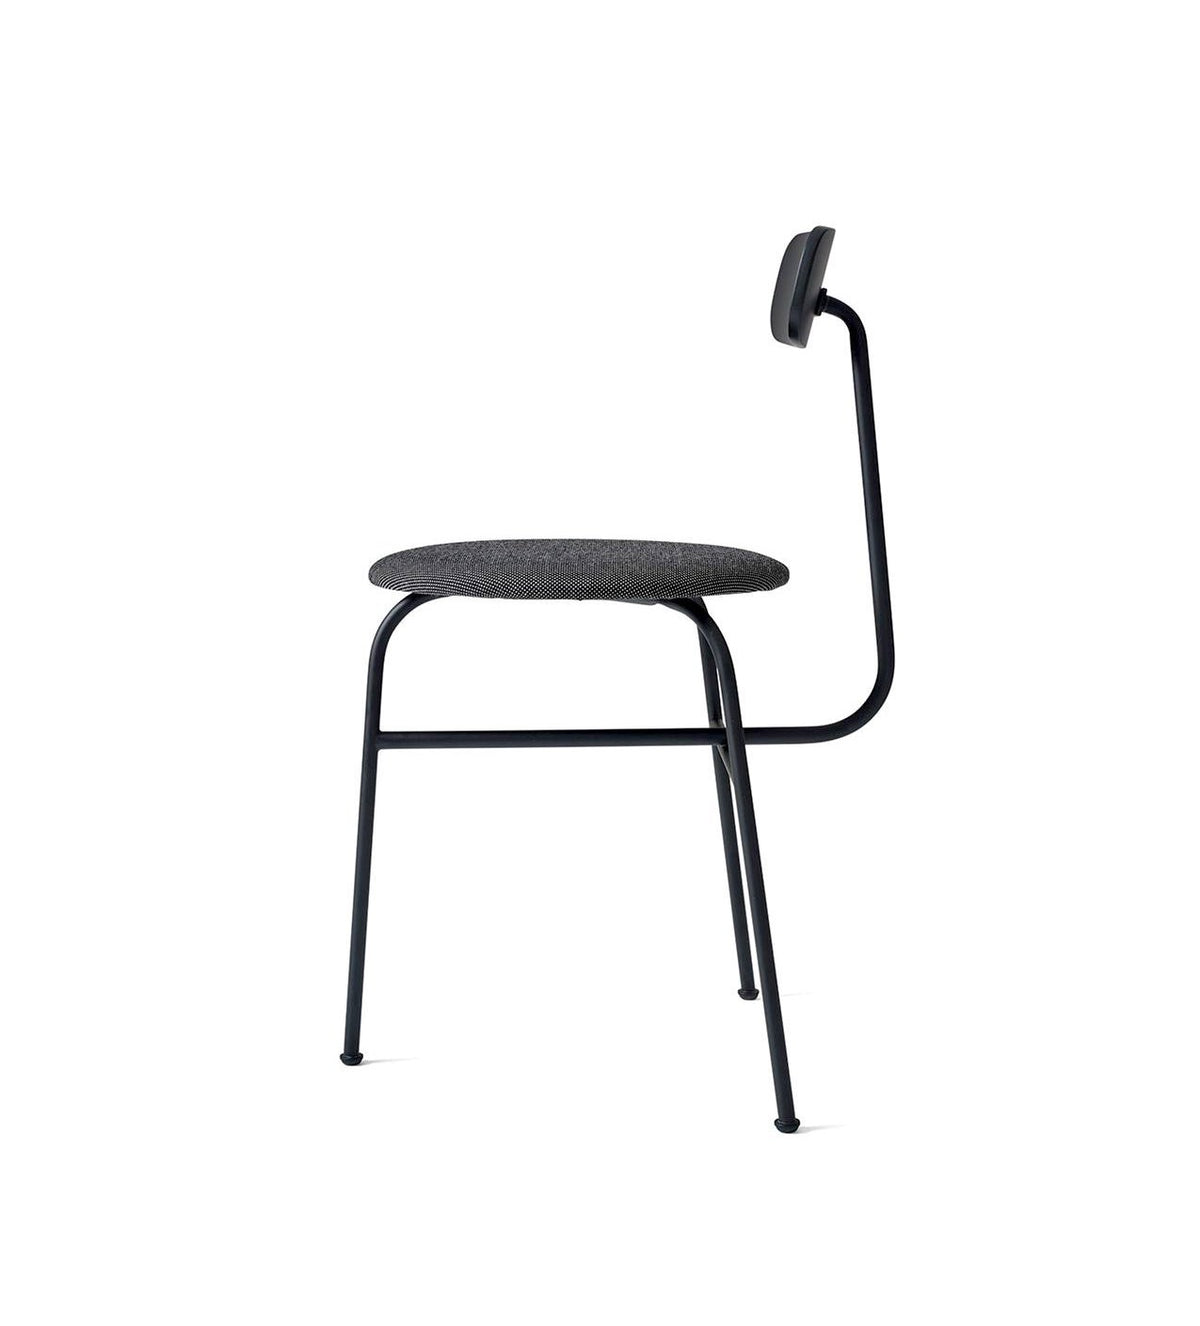 Ulysses Dining chair